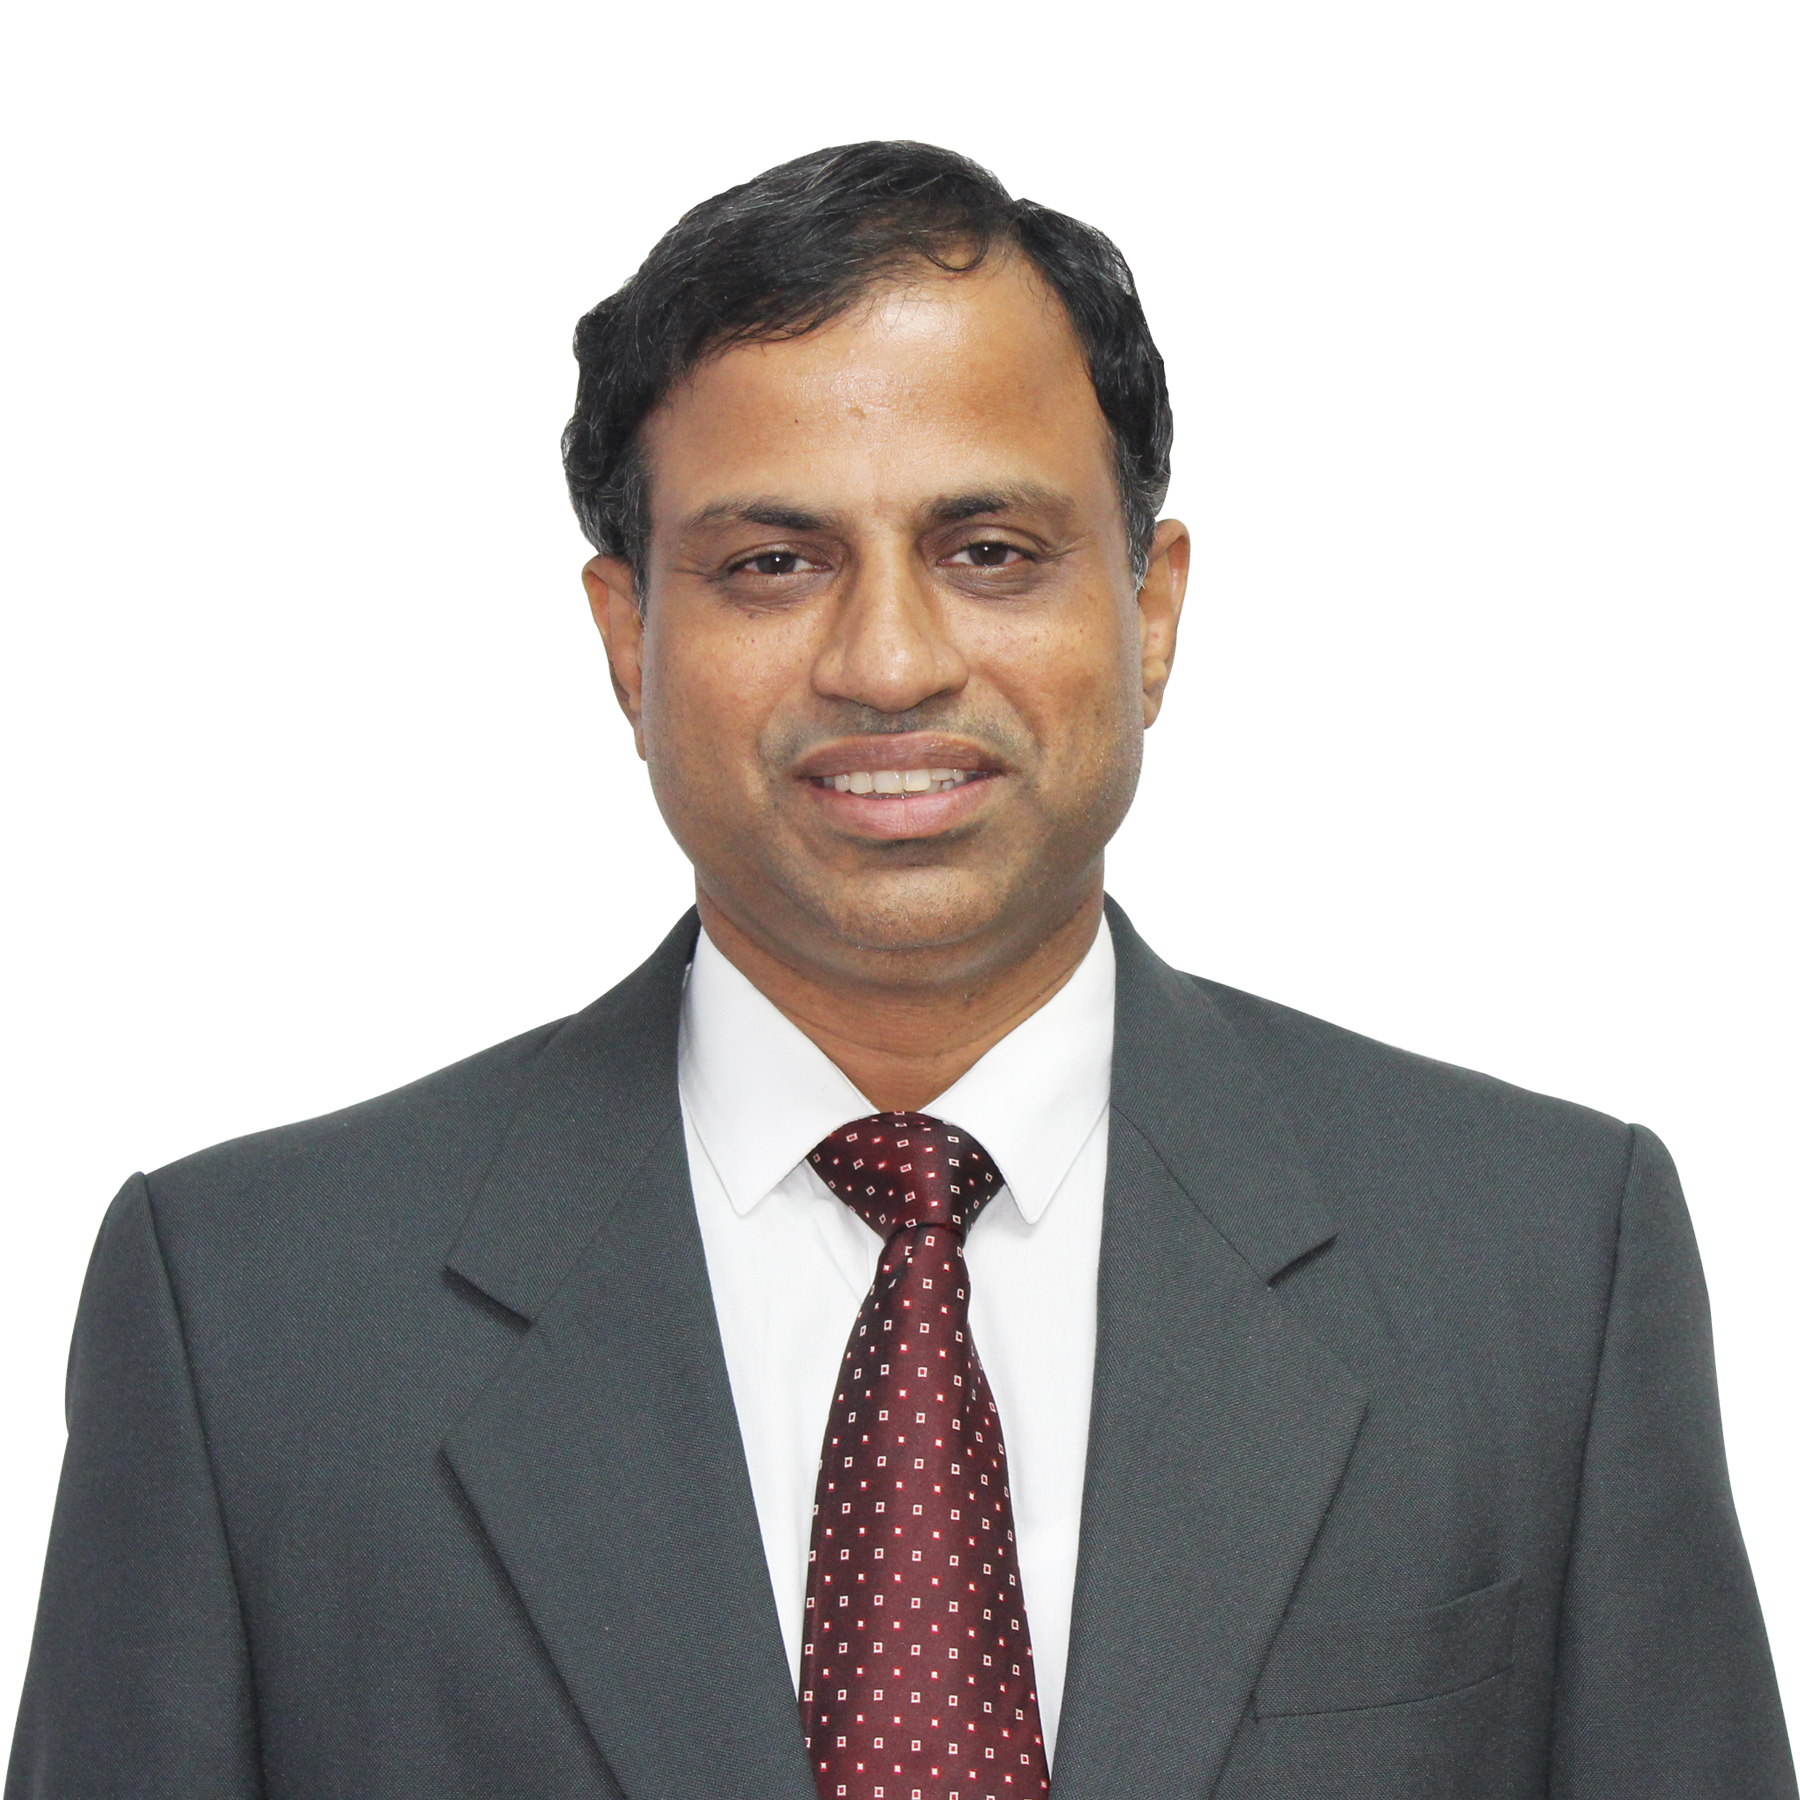 SANKARANARAYANAN RAGHAVAN - Chief Technology and Data Officer